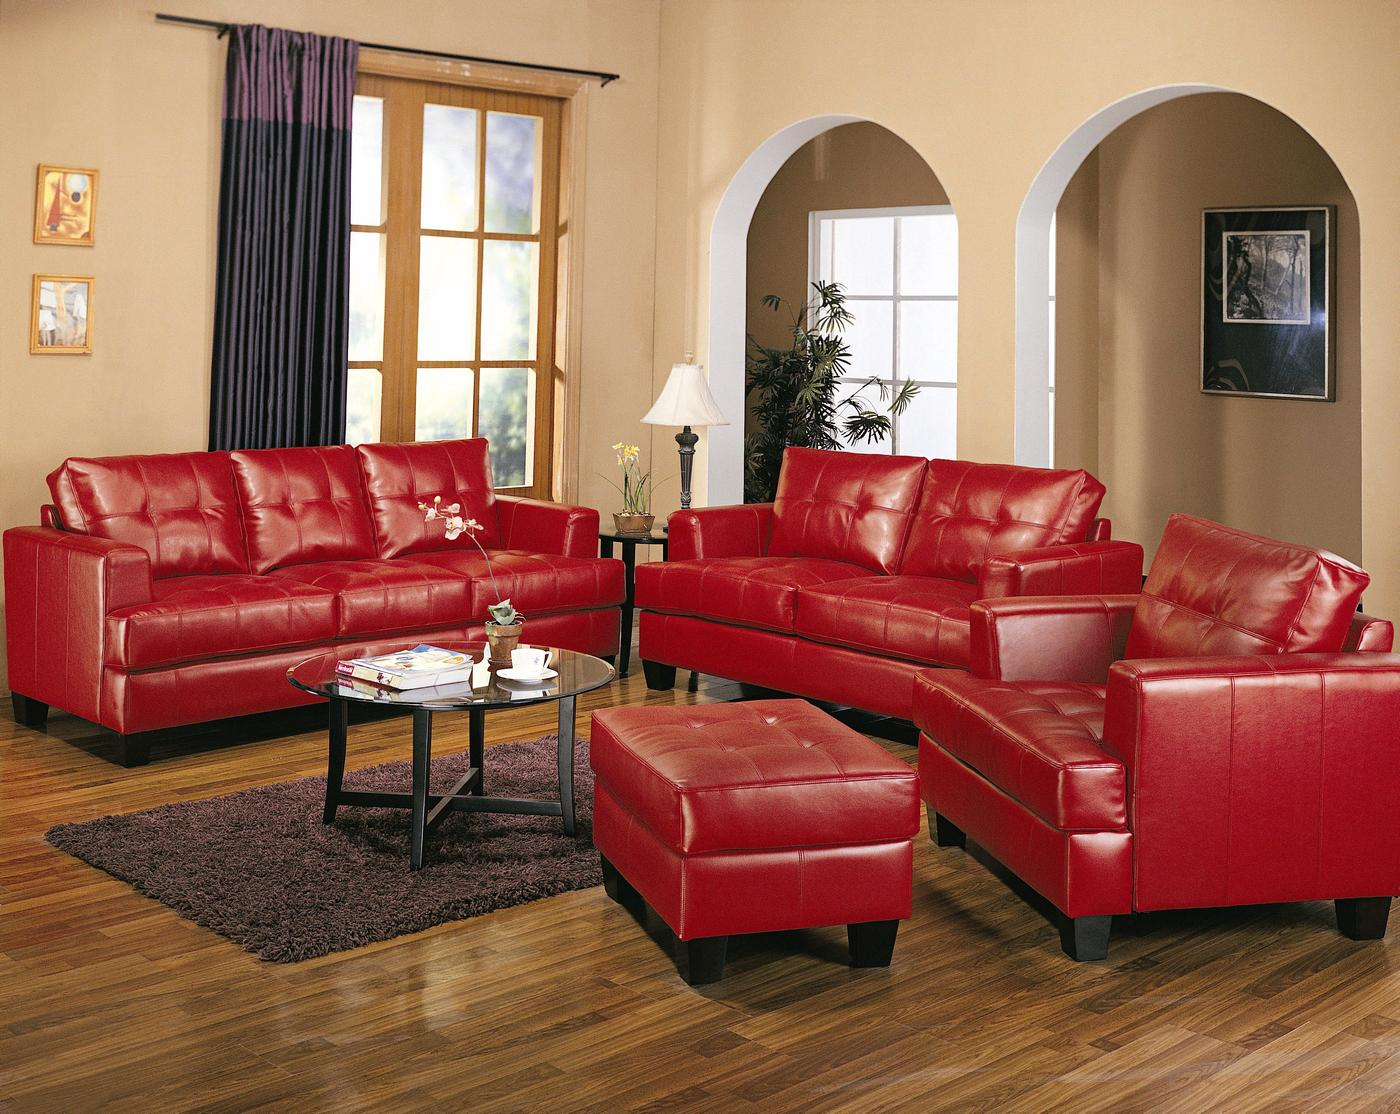 The leather sofa has long been a staple in thoughtfully curated homes, because, well, it does it all. Samuel Red Bonded Leather Sofa And Love Seat Living Room Set